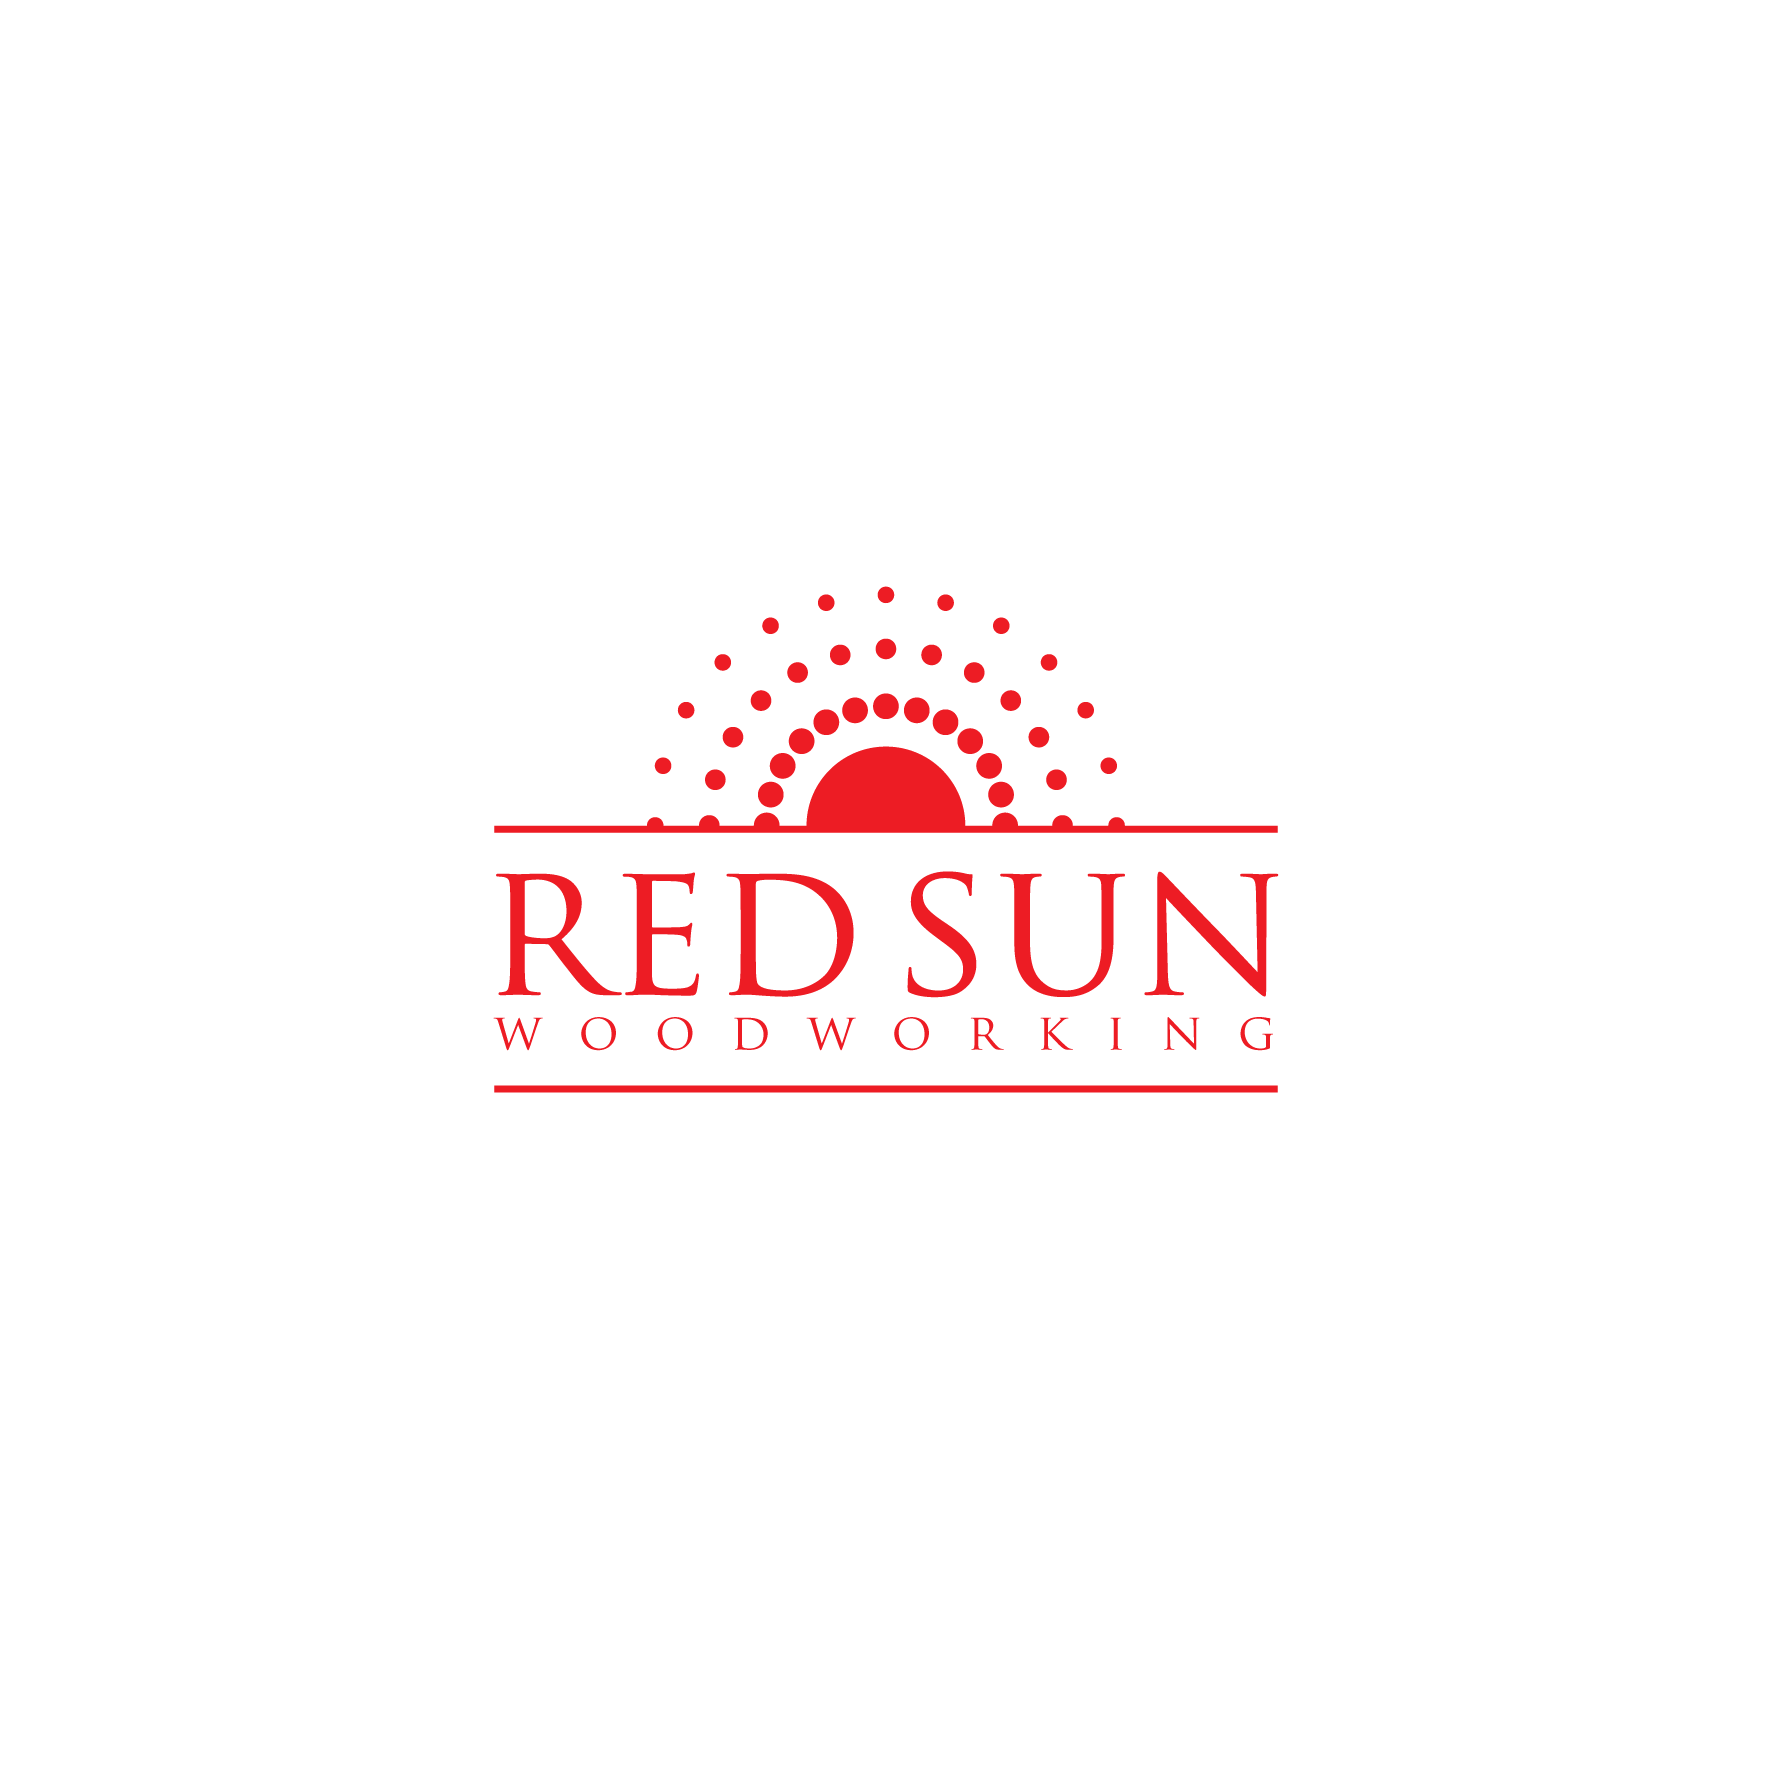 Logo Design by Mrs Suhartini - Entry No. 83 in the Logo Design Contest Red Sun Woodworking Logo Design.